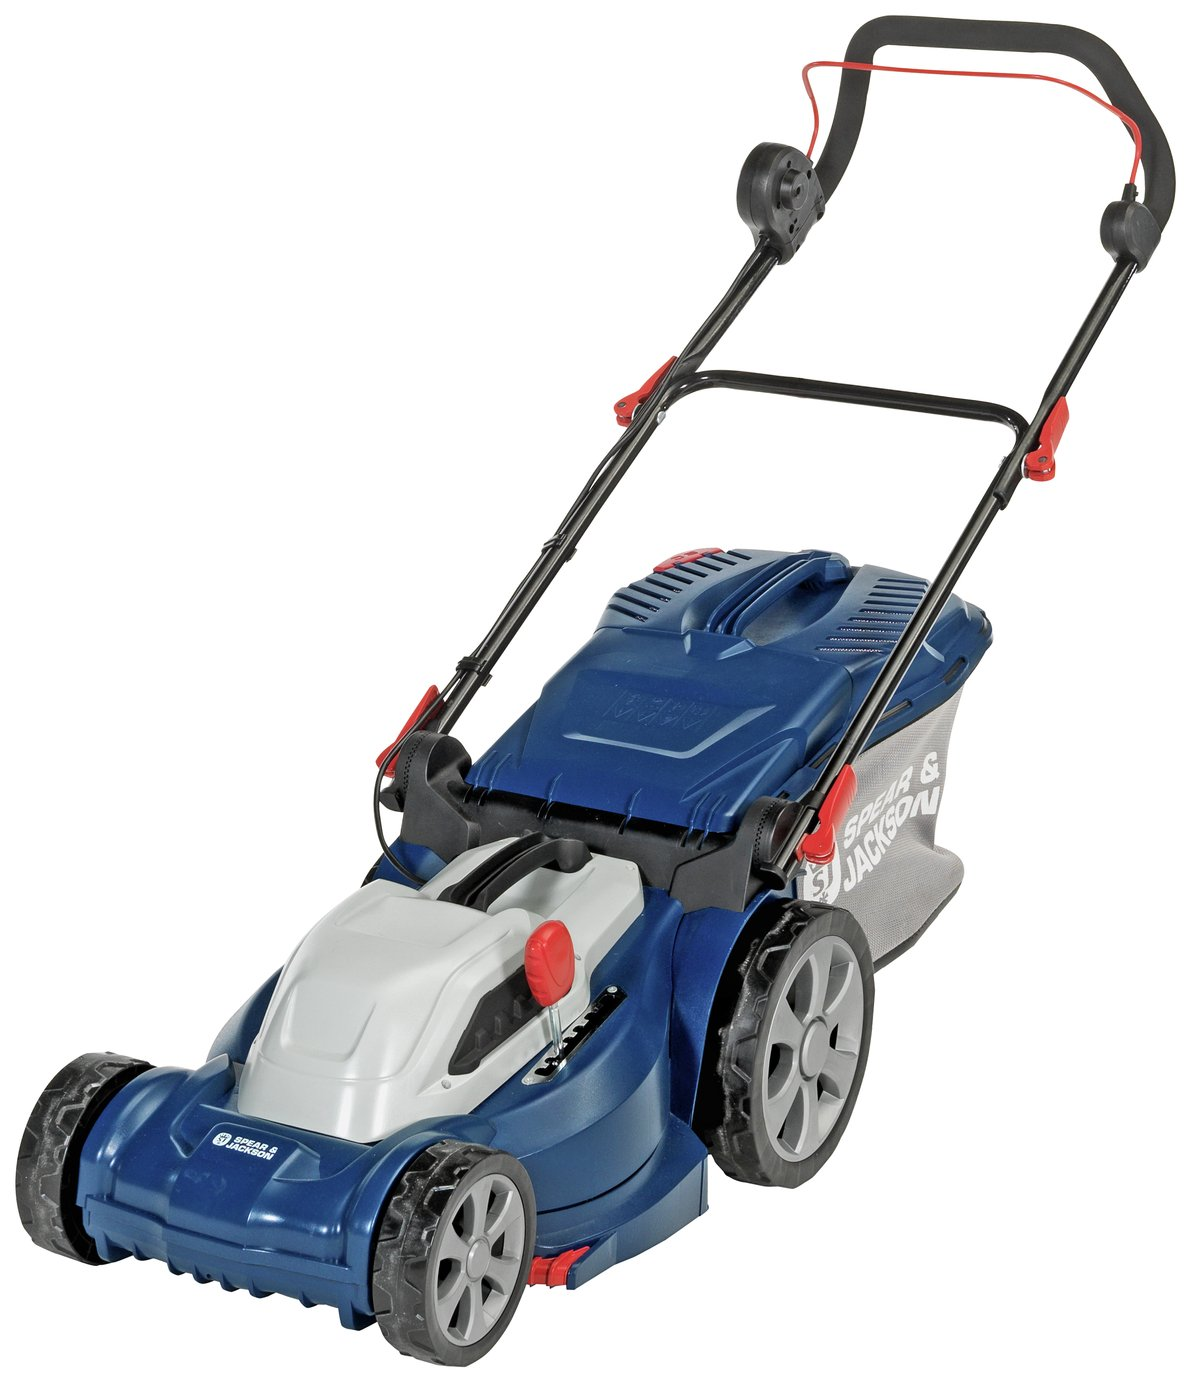 sale on spear jackson 37cm corded rotary lawnmower. Black Bedroom Furniture Sets. Home Design Ideas